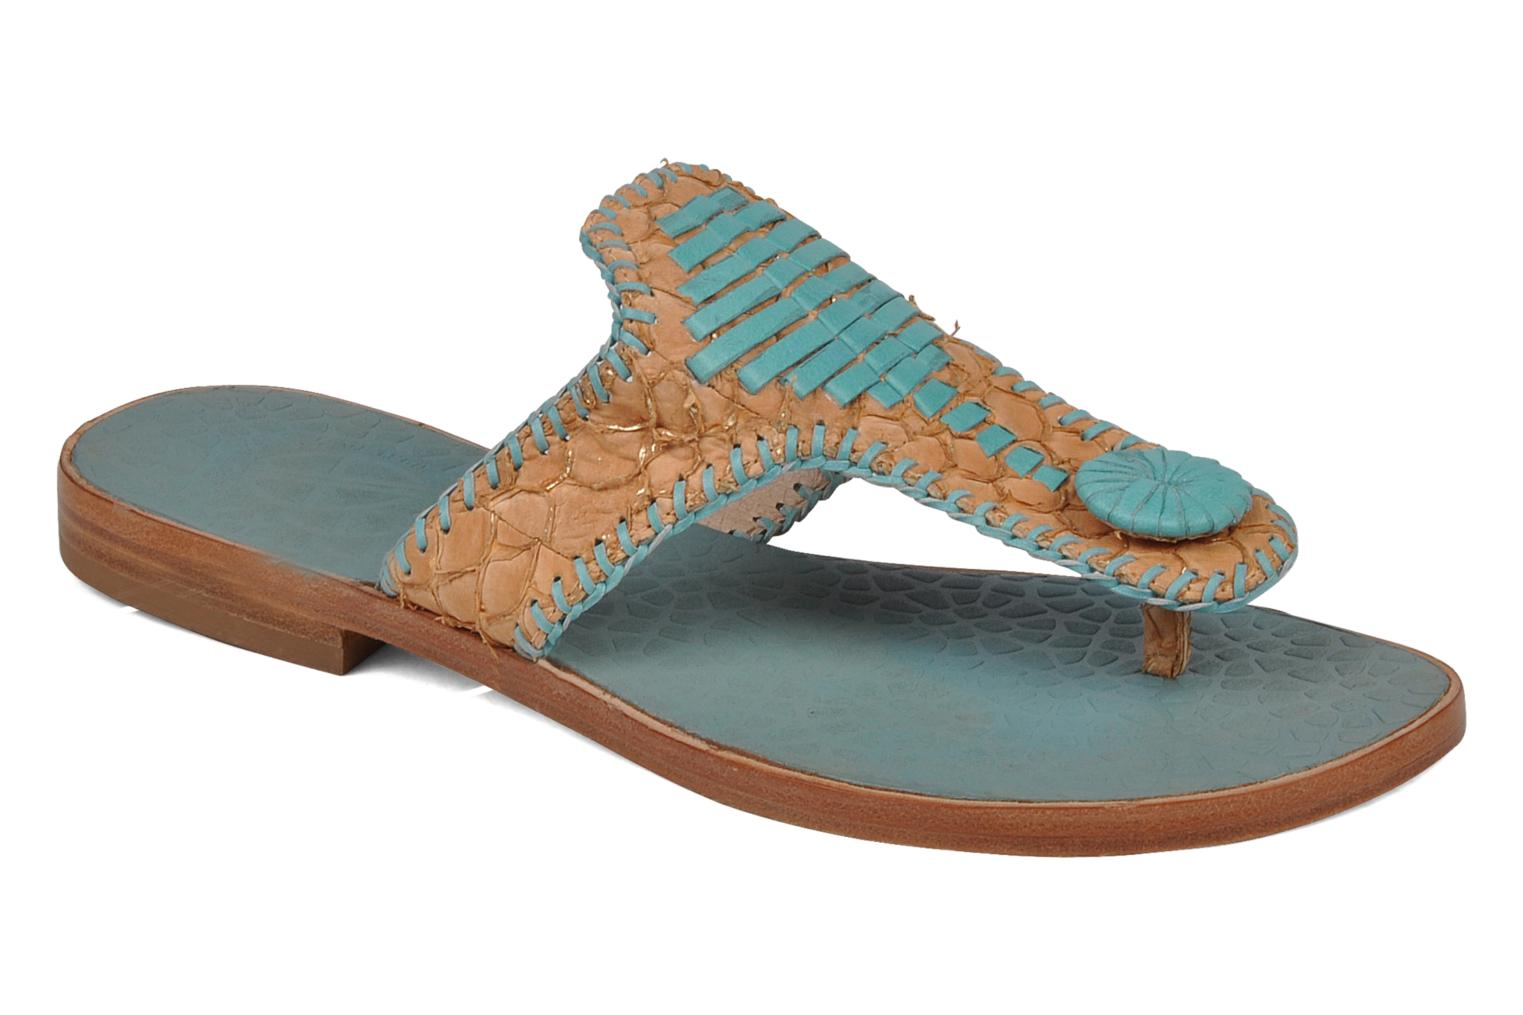 Emerson Tan gold turquoise